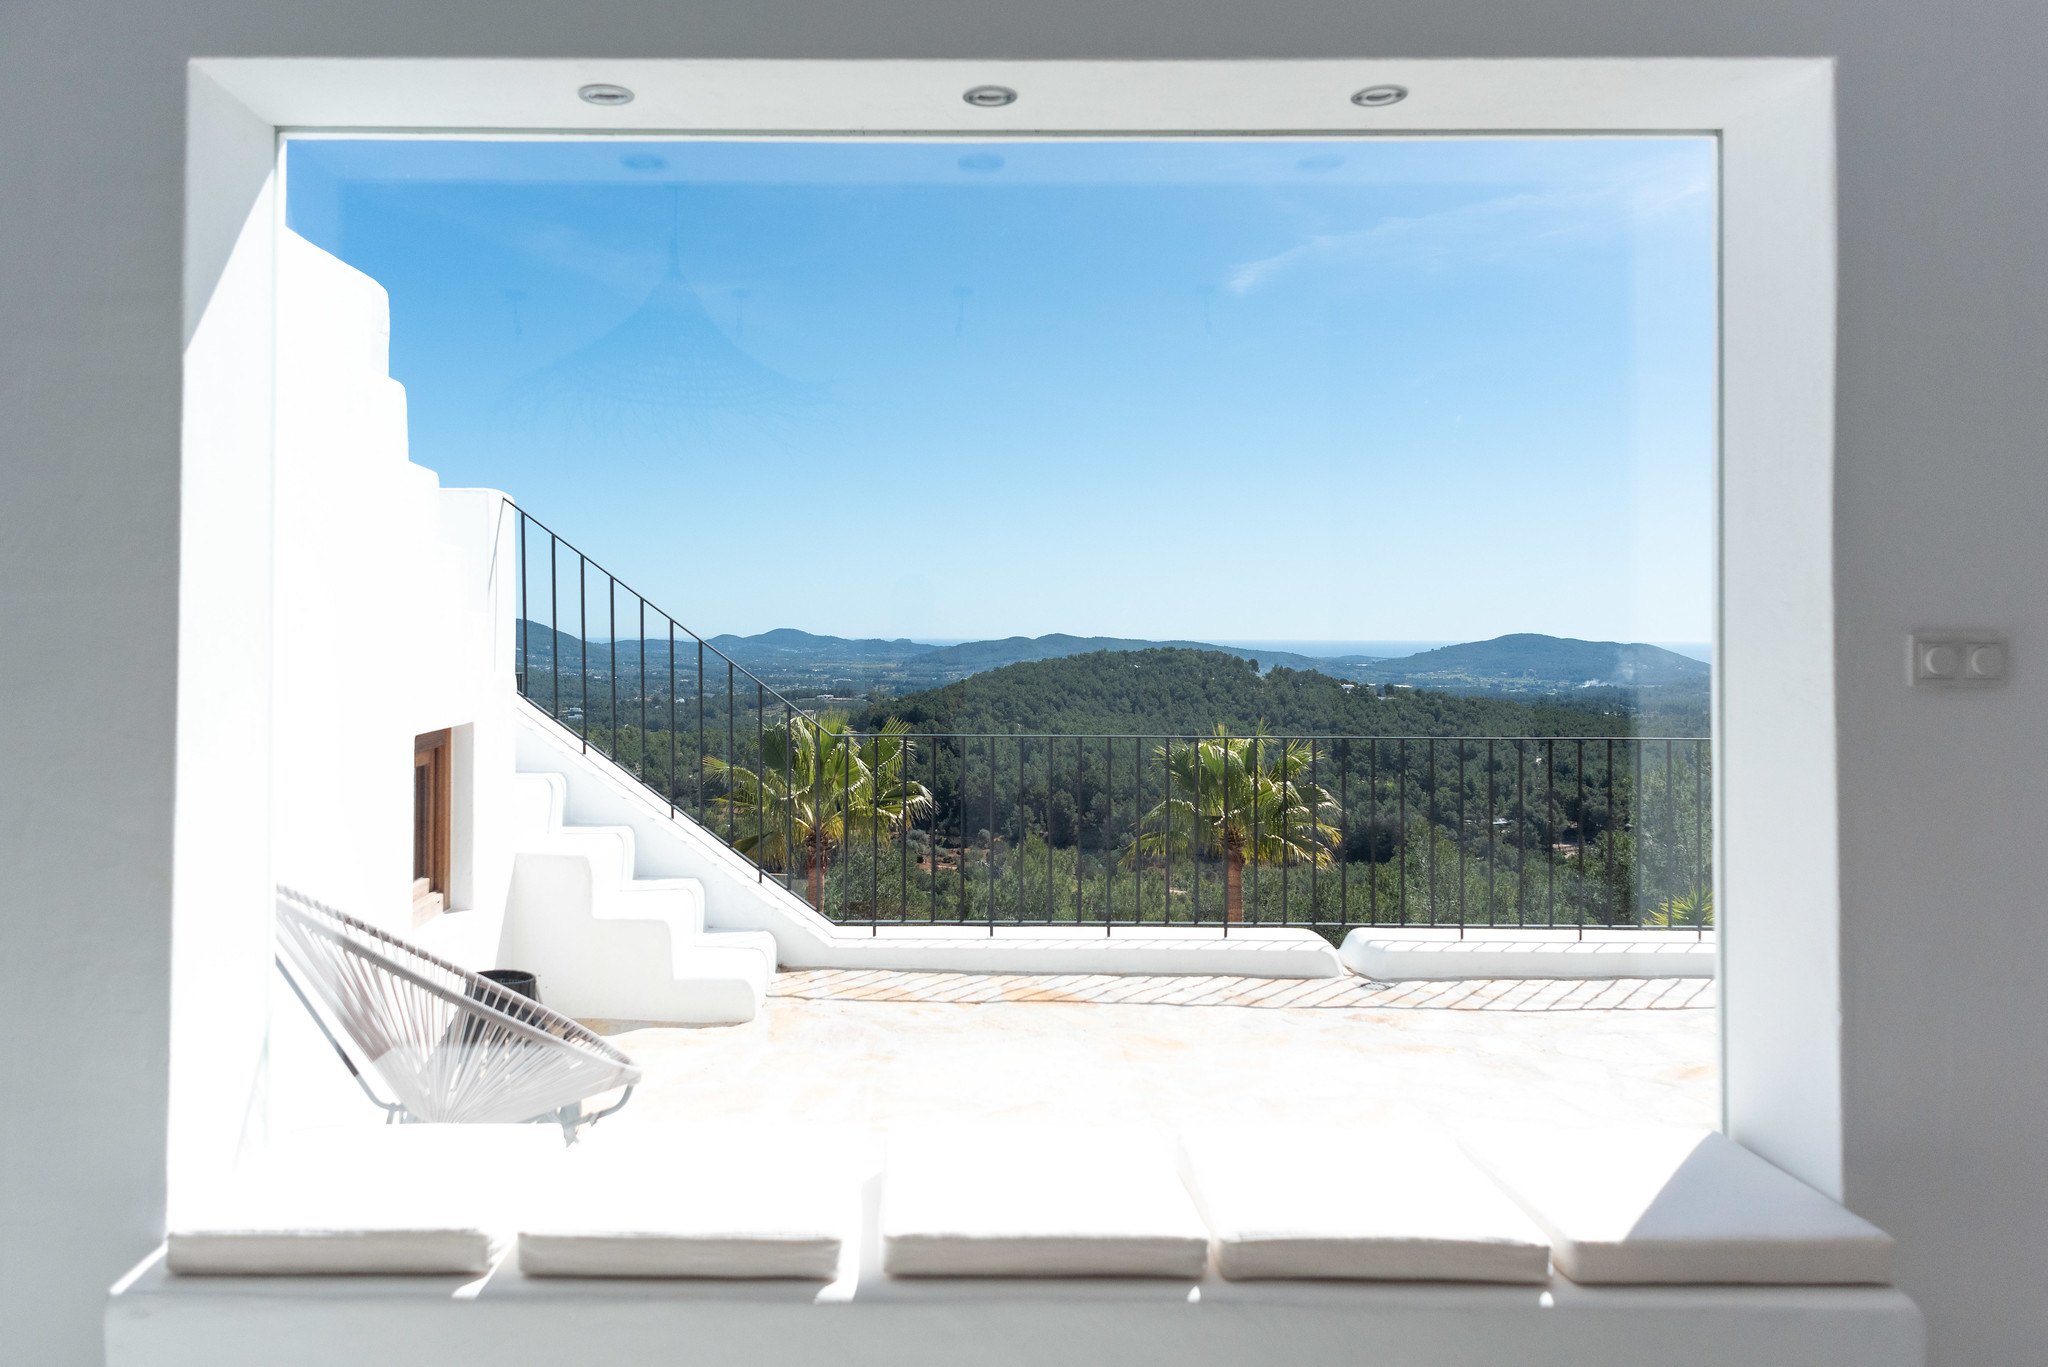 https://www.white-ibiza.com/wp-content/uploads/2020/05/white-ibiza-villas-can-cactus-window-view.jpg